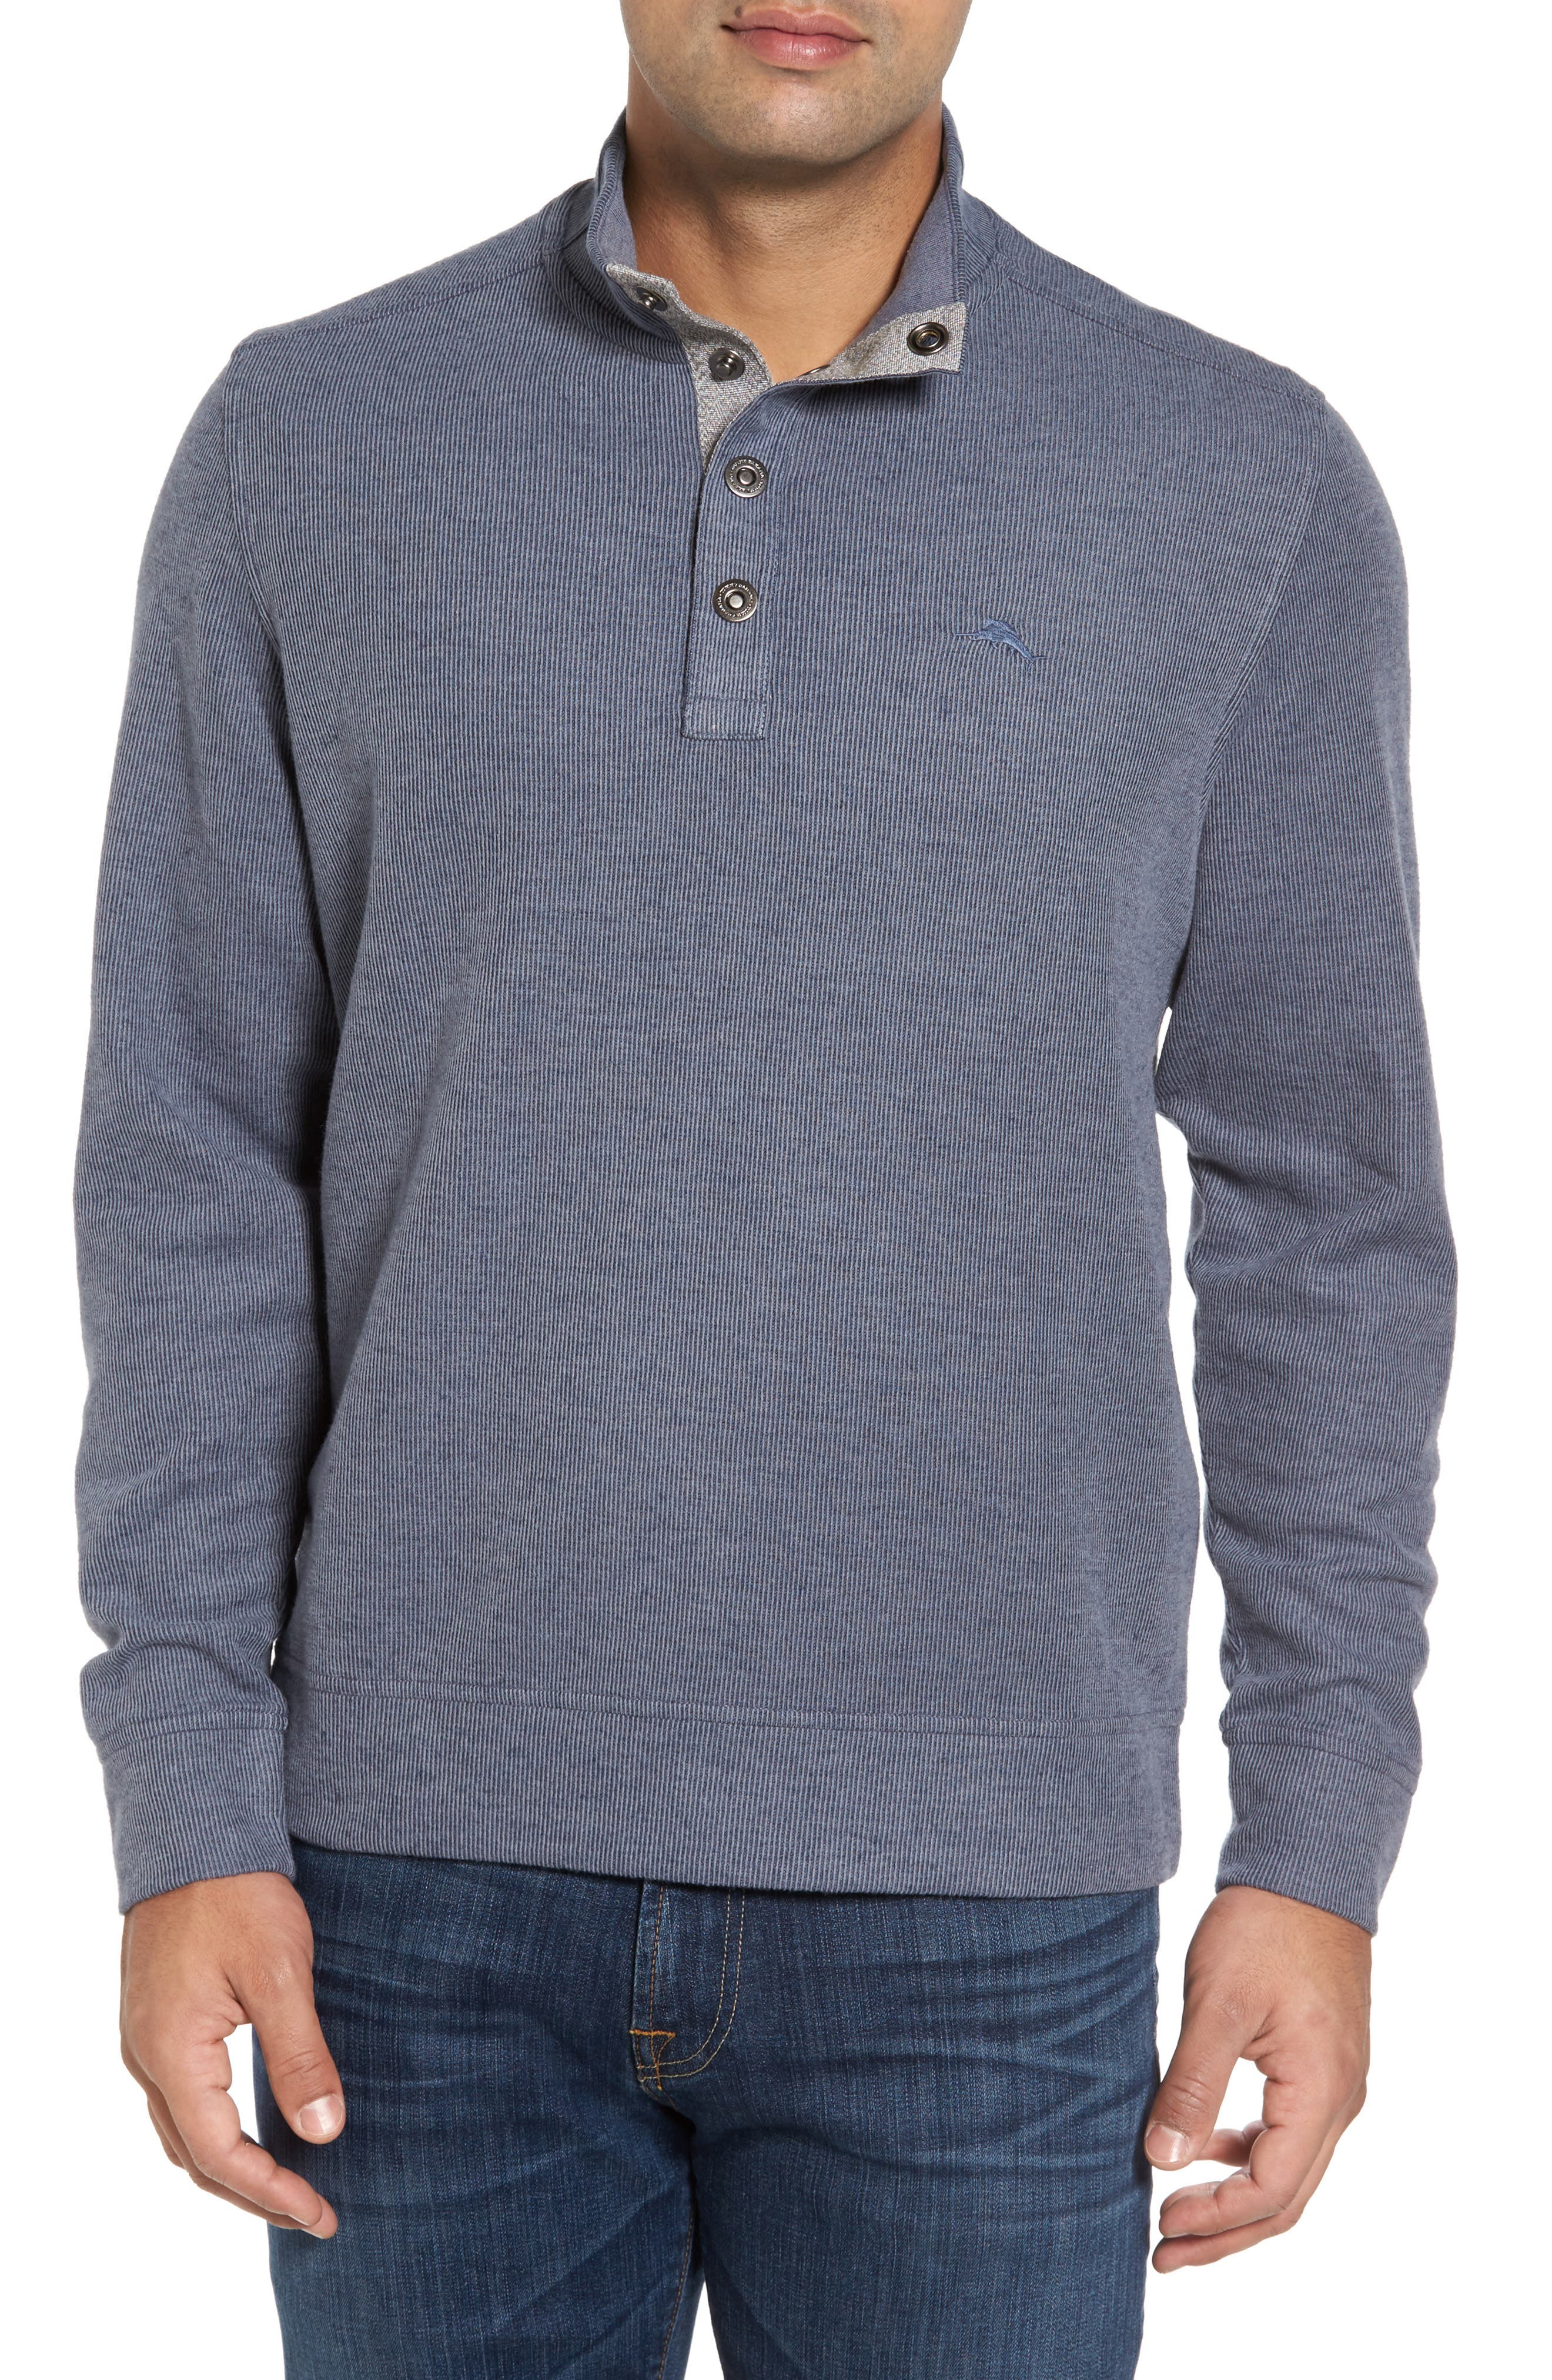 Cold Springs Snap Mock Neck Sweater,                             Main thumbnail 5, color,